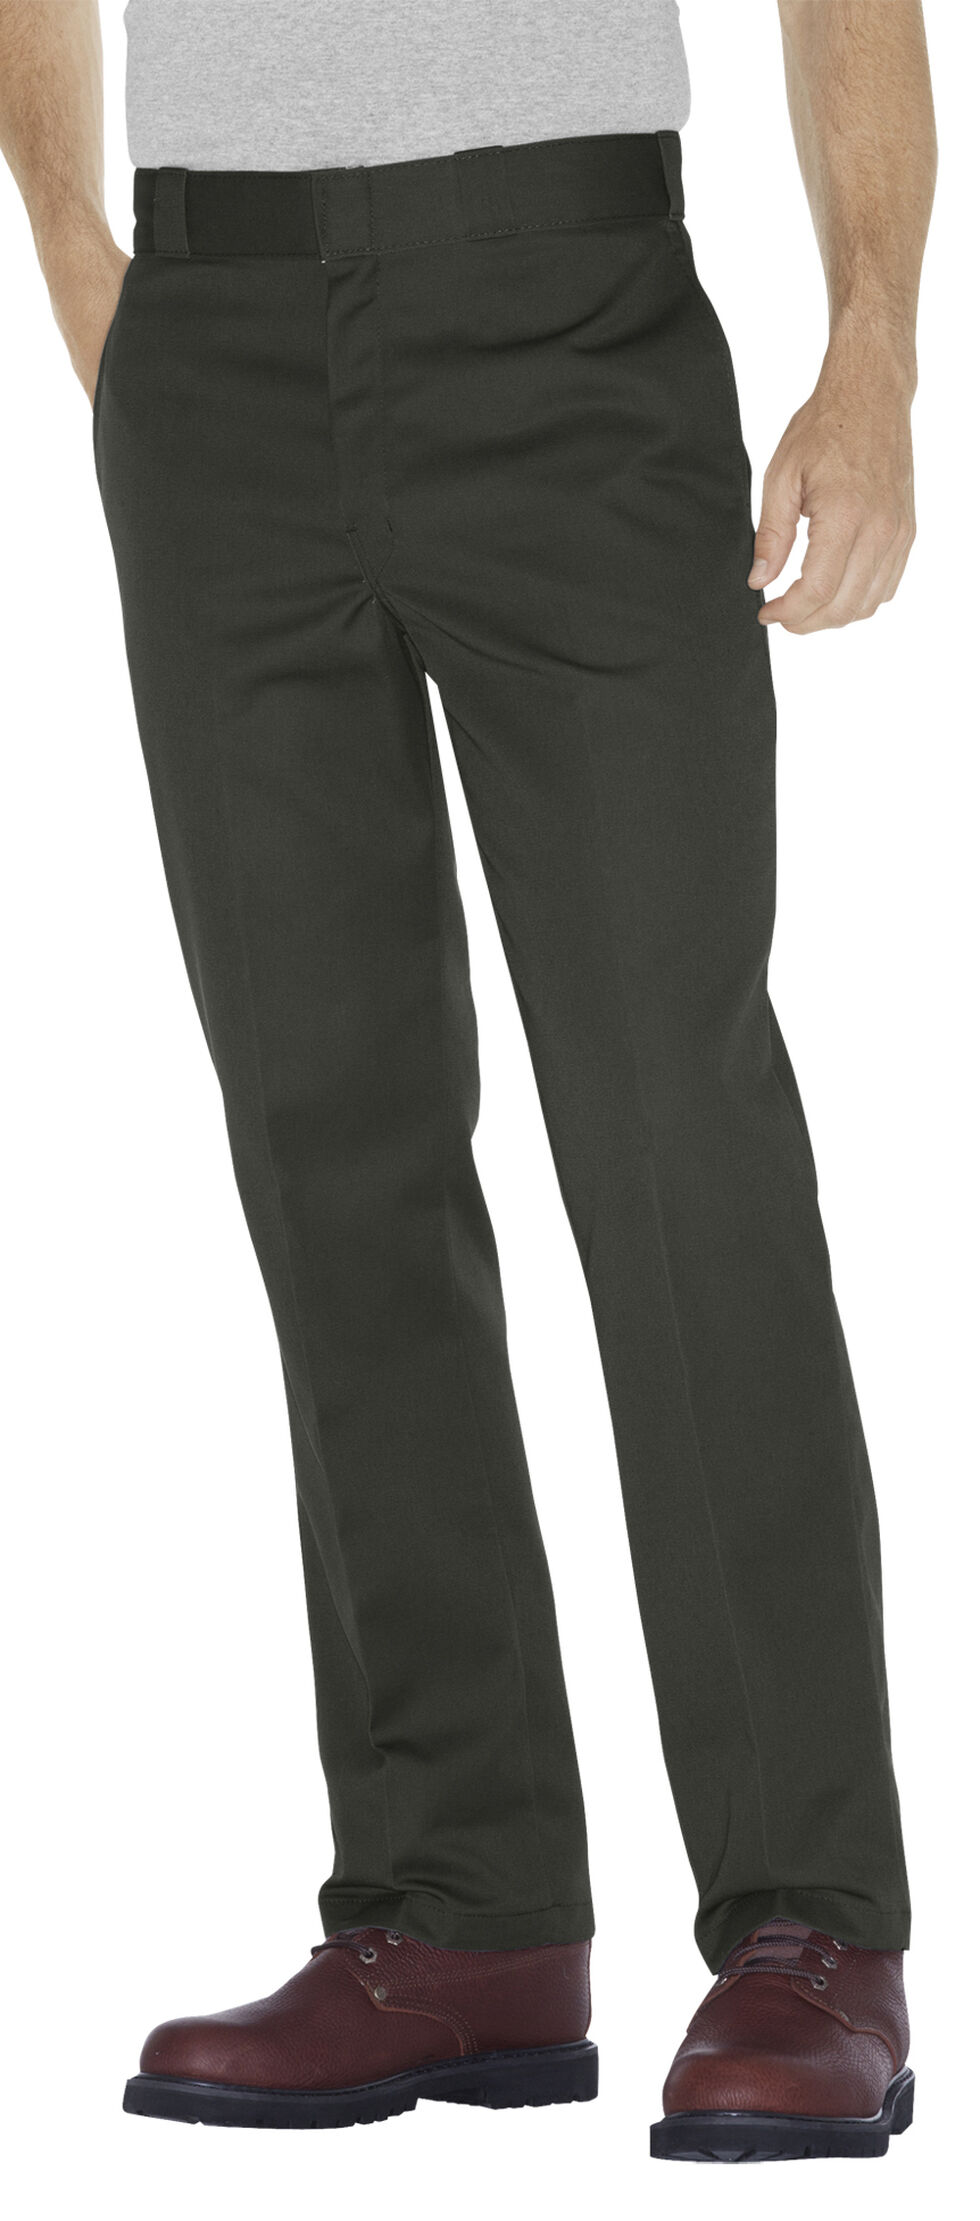 Dickies Men's Original 874® Olive Work Pants - Big & Tall, Olive Green, hi-res